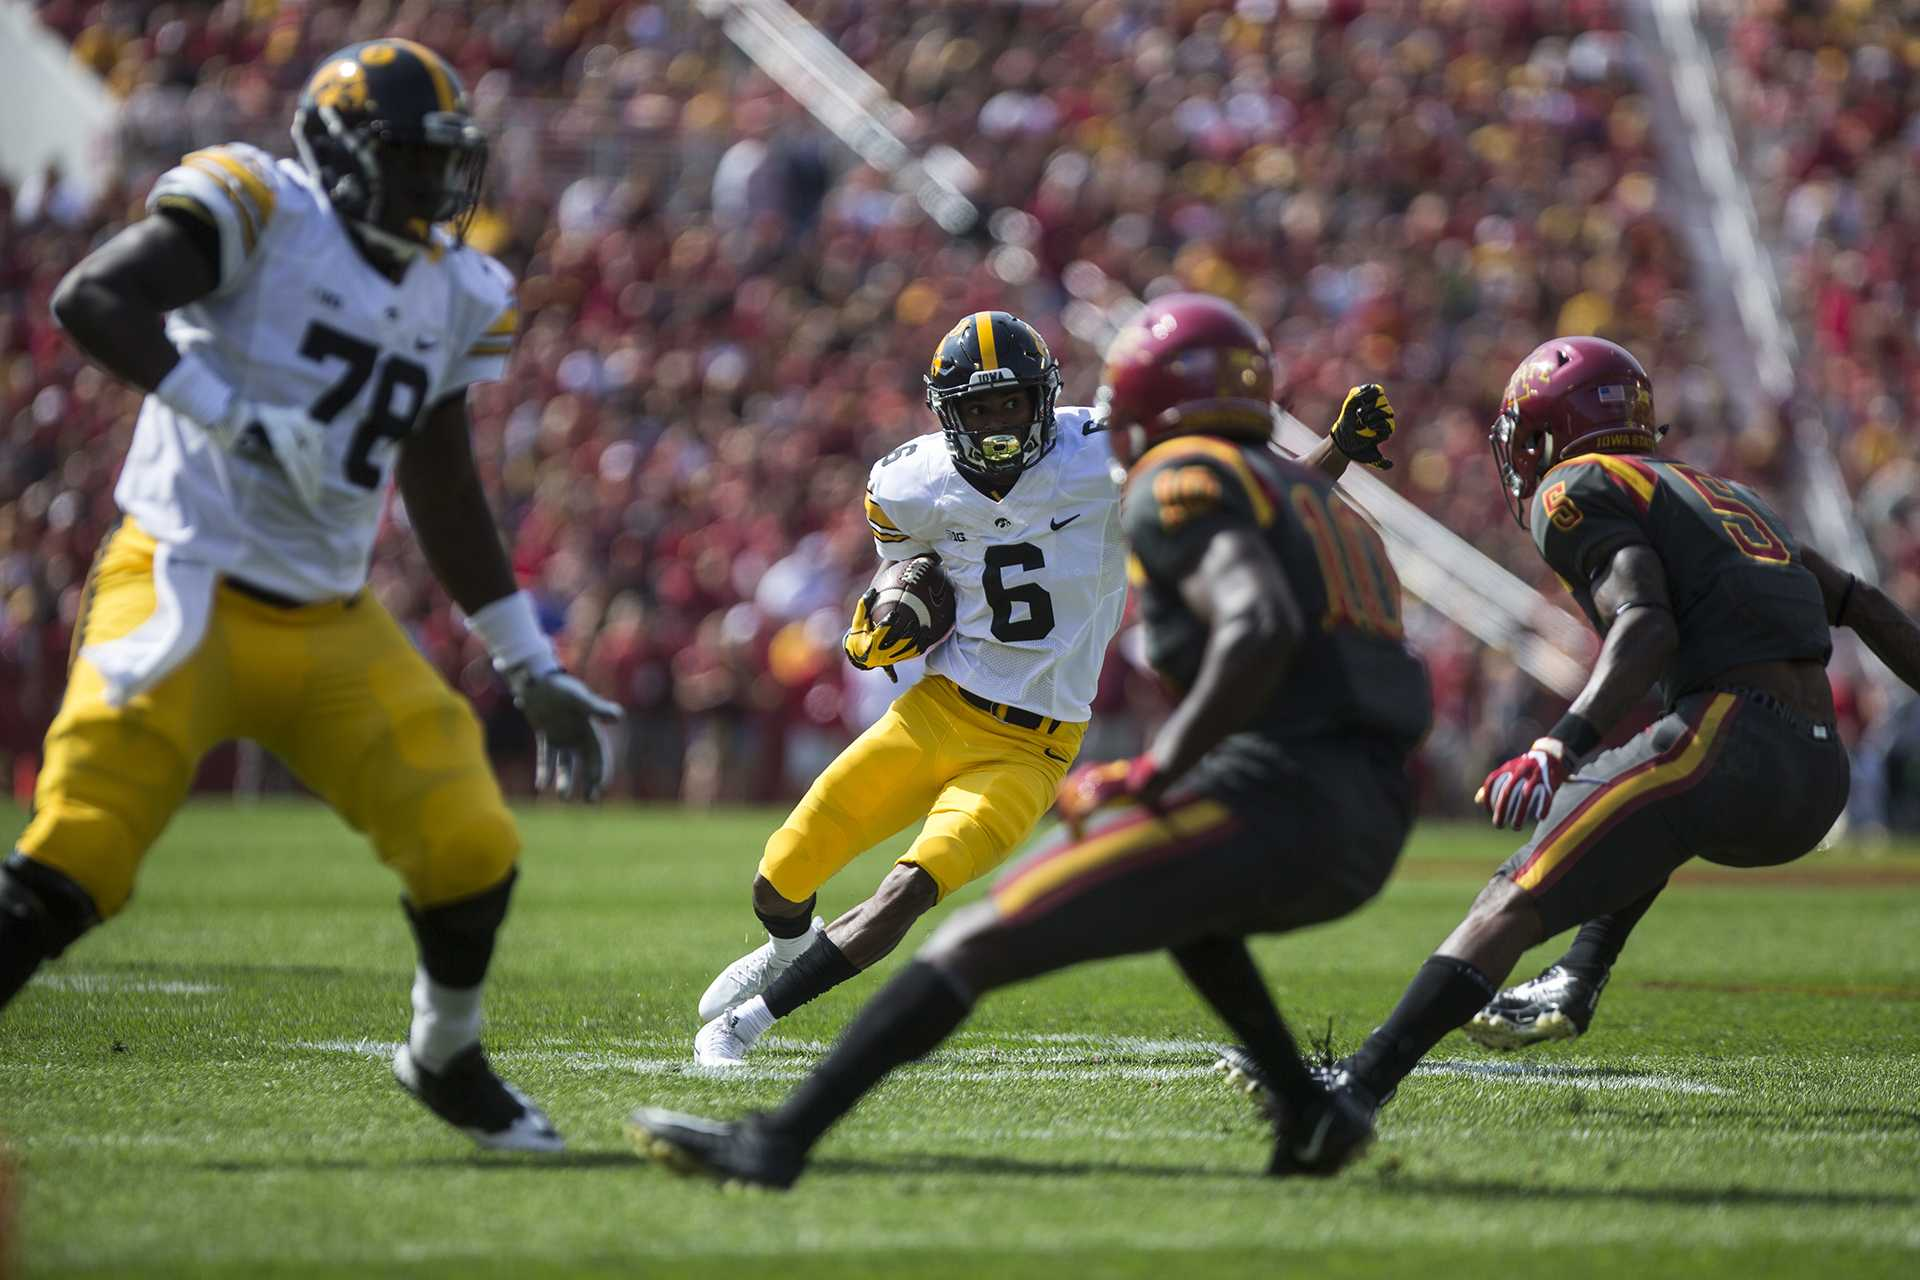 Iowa's Ihmir Smith-Marsette avoids tackles during the Iowa State game at Jack Trice Stadium on Saturday, Sept. 9, 2017.